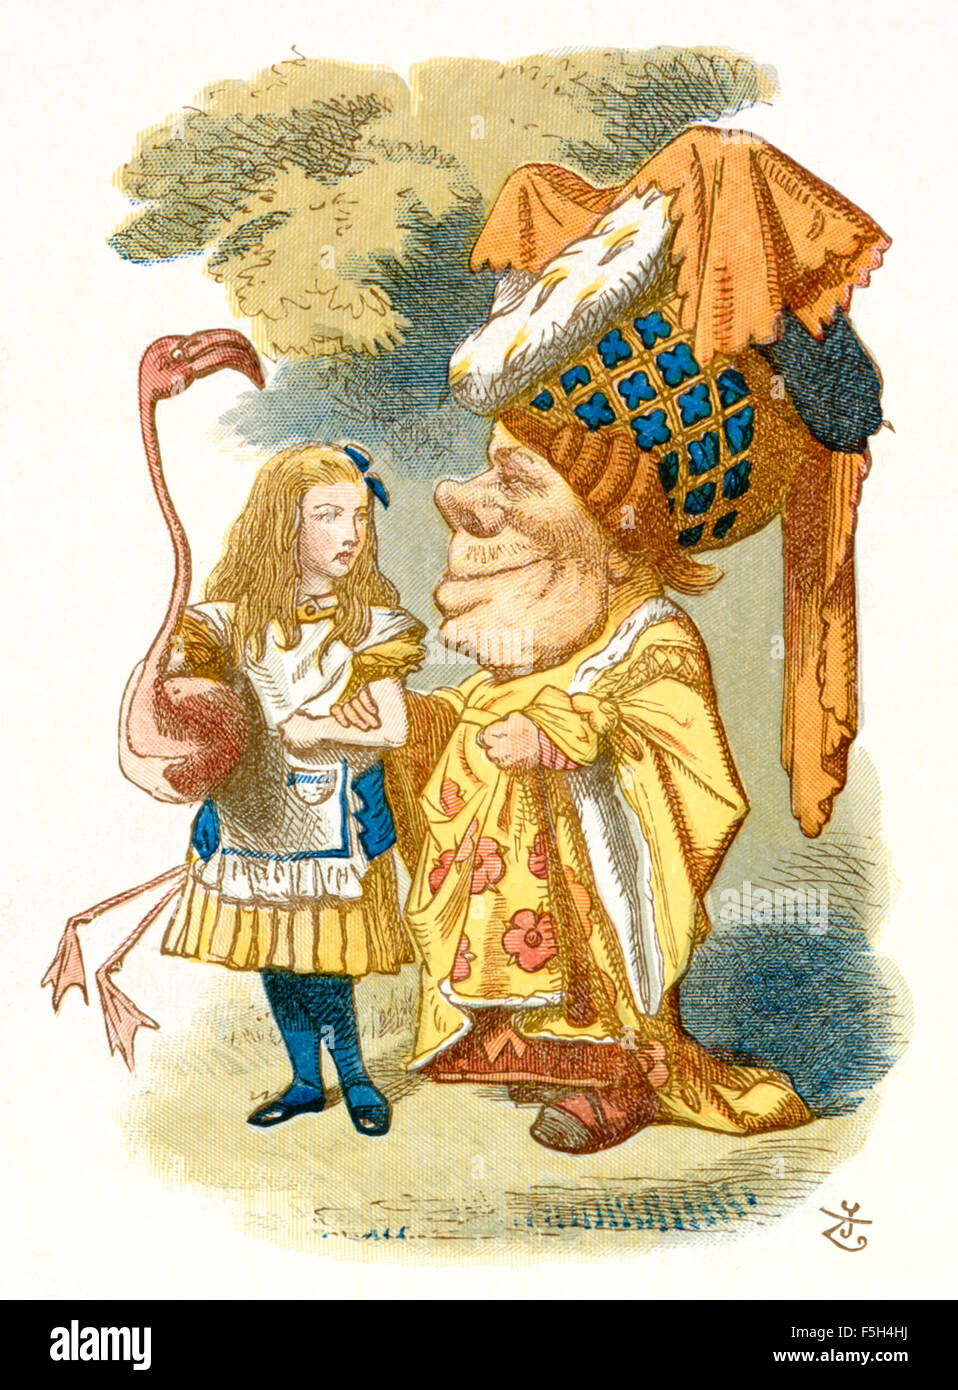 "The Duchess and Alice about to play Croquet, from 'The Nursery ""Alice'', an shortened adaptation of - Stock Image"